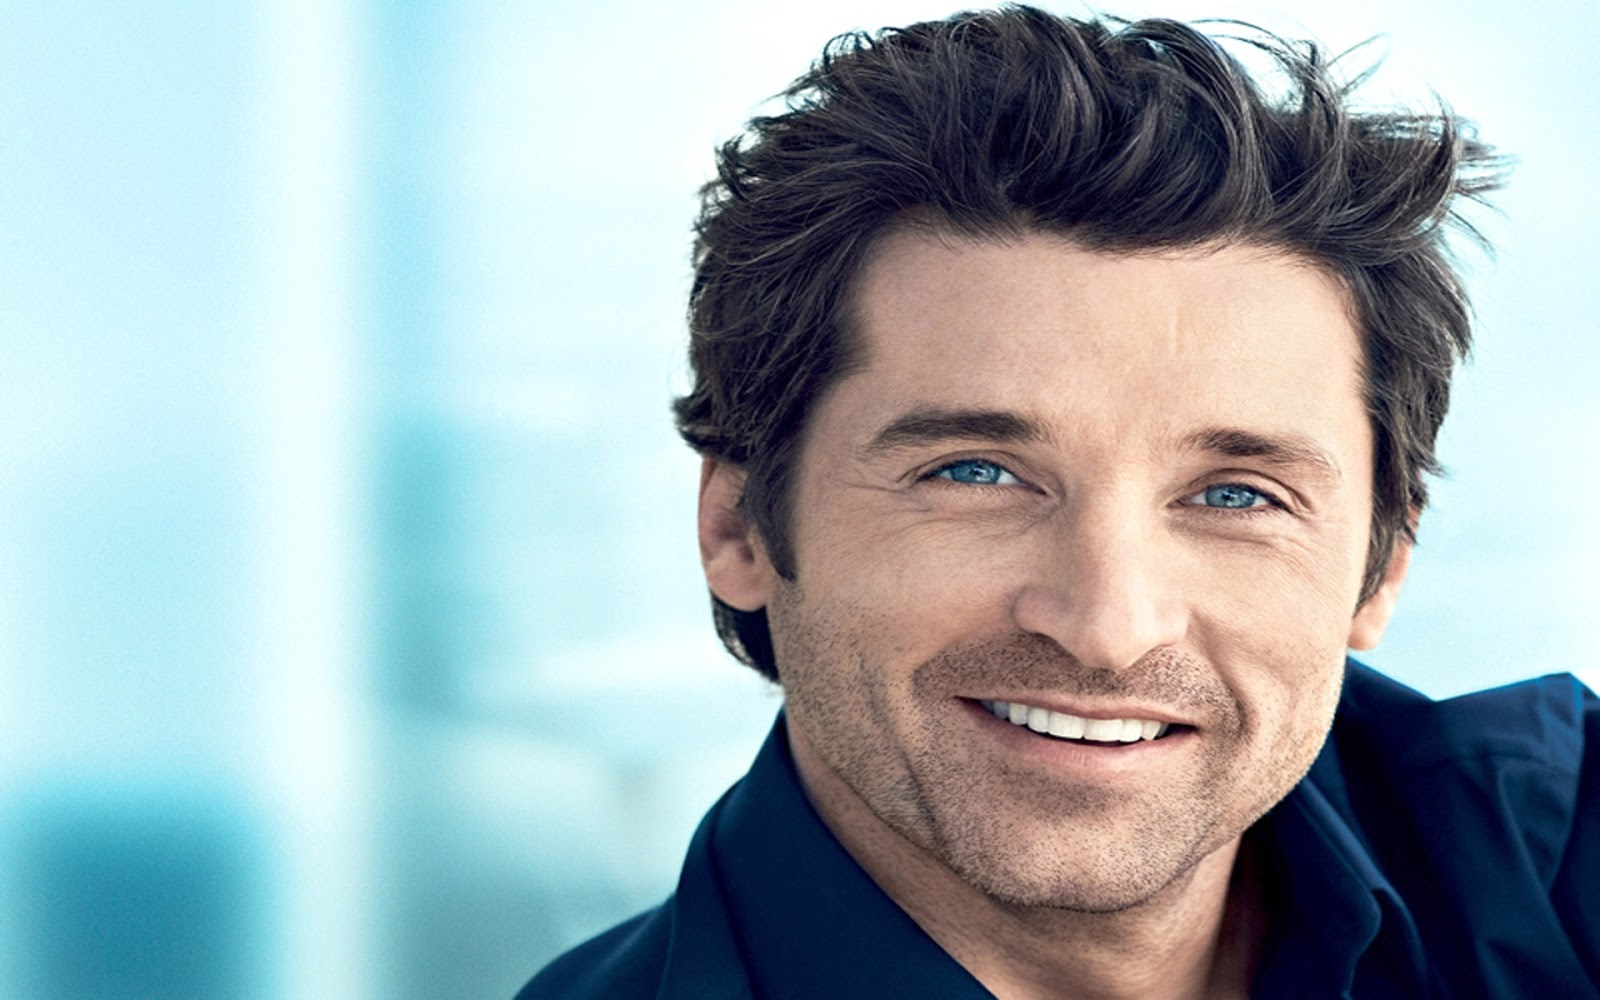 wallpapers hollywood actors - photo #4